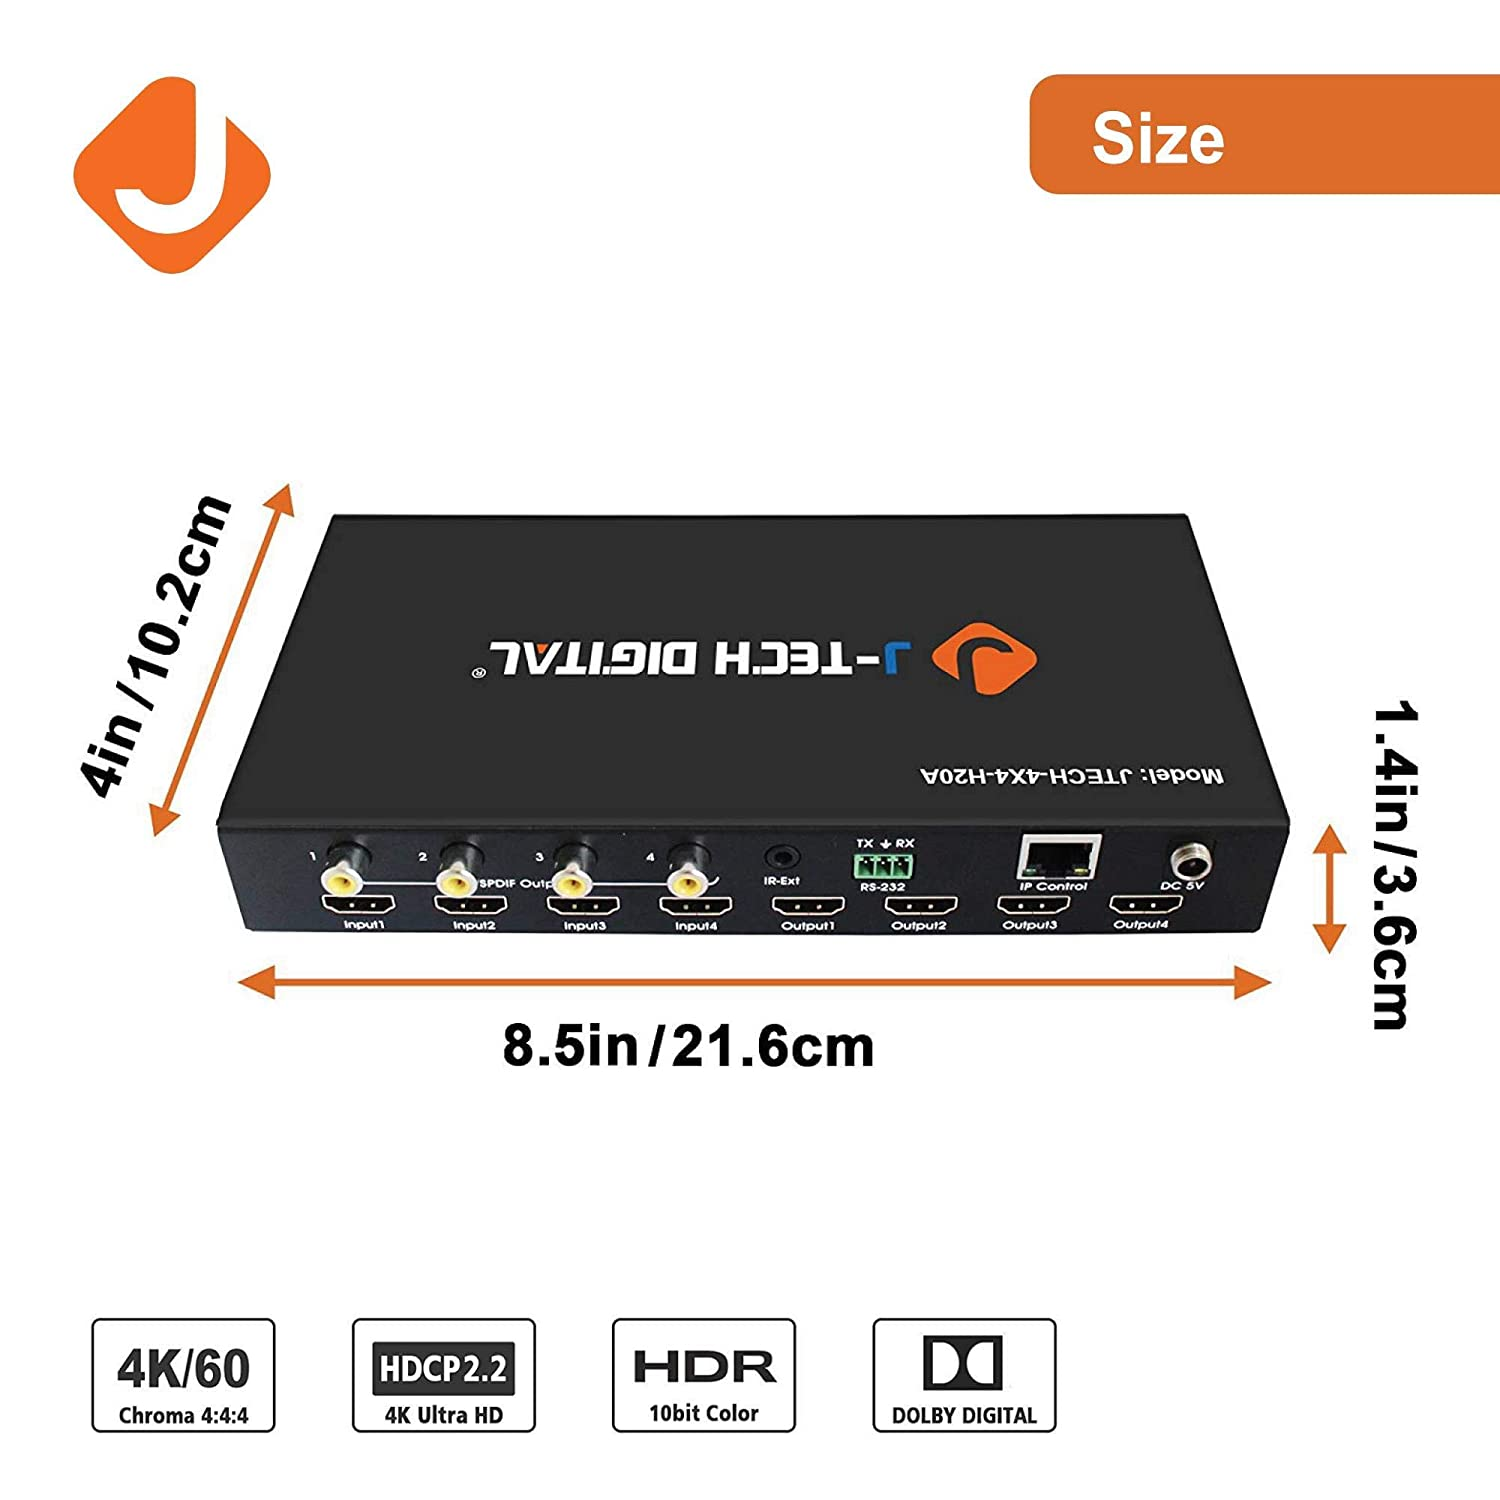 J Tech Digital Proav Hdbaset Hdmi 20 Hdcp 22 4k 4x4 Details About Cat5e Cat6 Matrix Auto Switch Splitter Extender Switcher With 4 Poe Receivers Over Single 6 Cable Supports